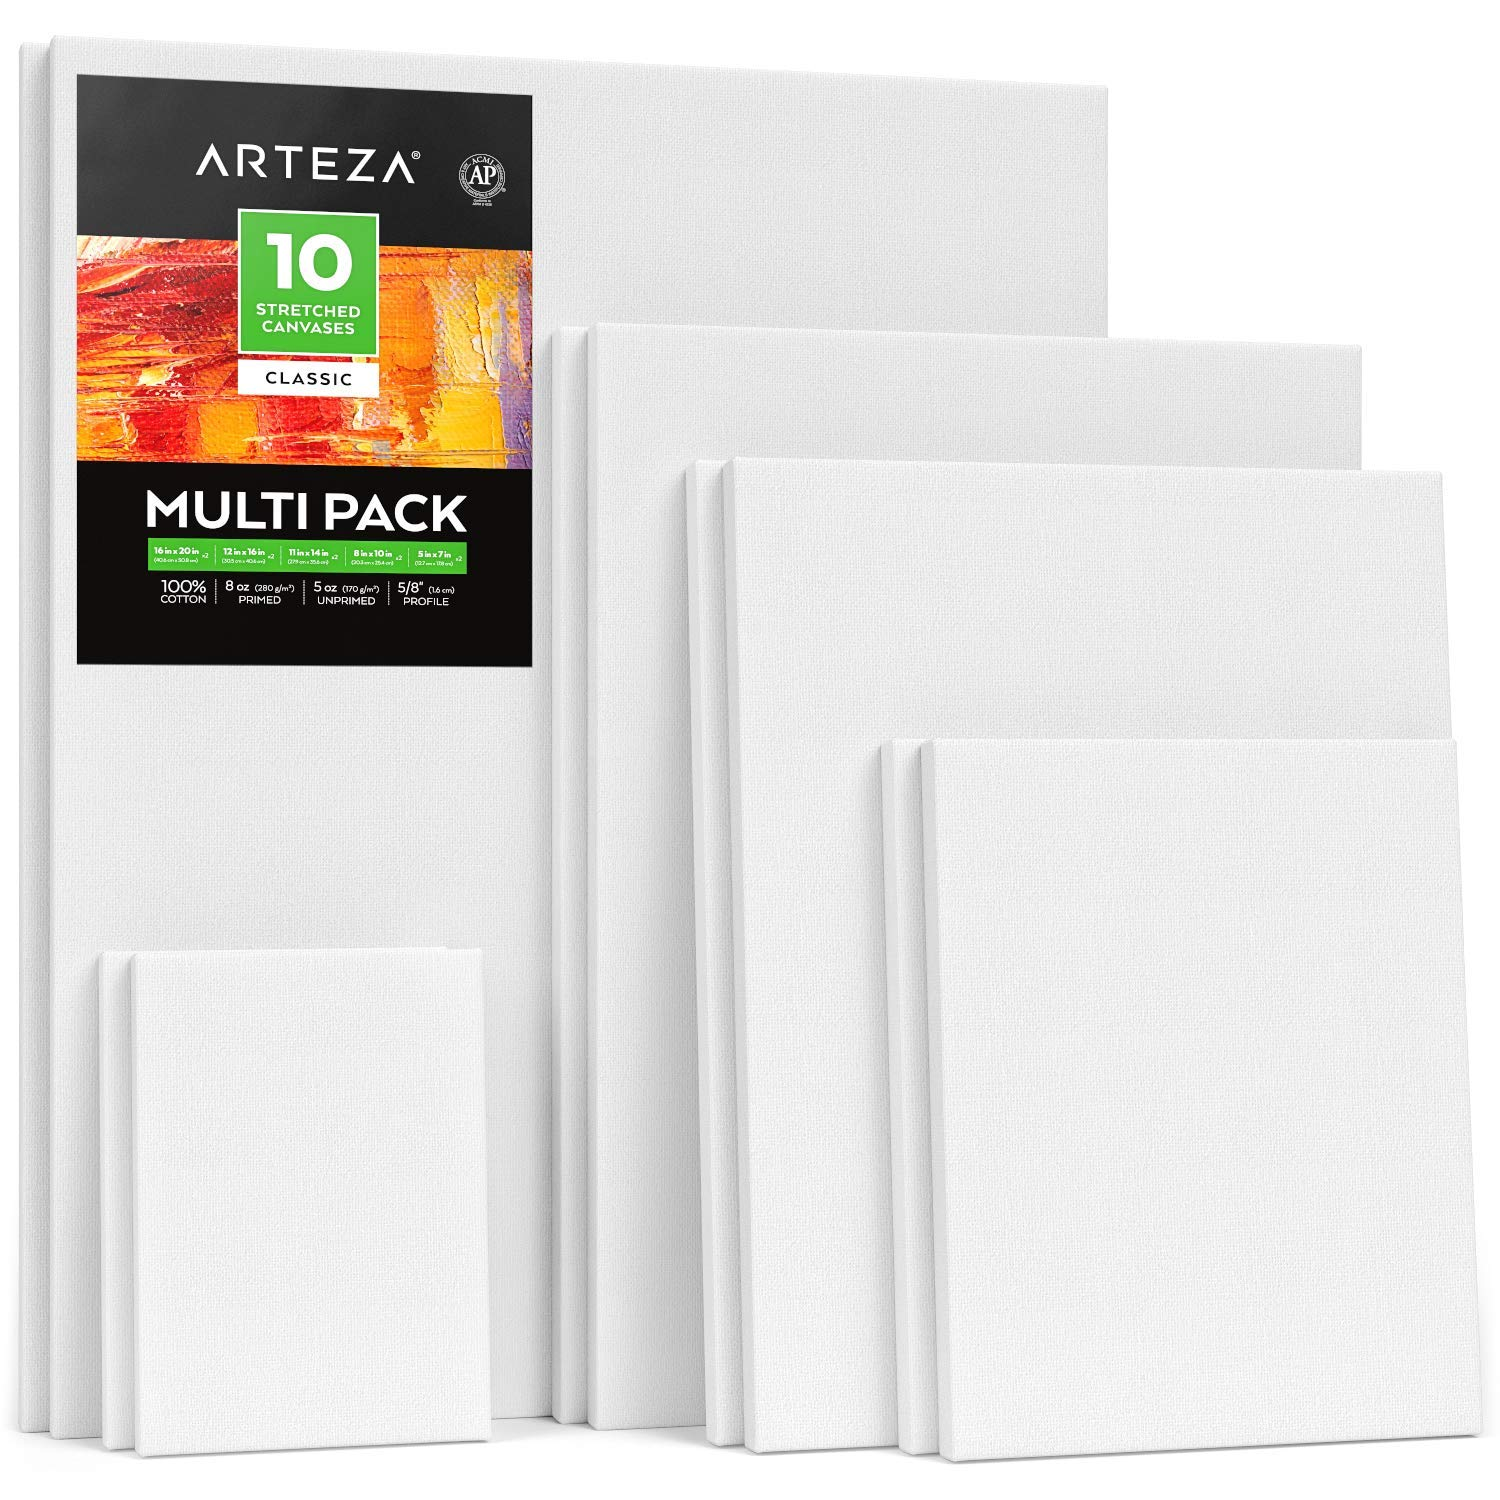 Arteza Stretched White Blank Canvas Multi Pack, 4x4'', 5x7'', 8x10'', 9x12'', 11x14'' (2 of Each) Set of 10, Primed, 100% Cotton, for Acrylic, Oil, Other Wet or Dry Art Media, for Artists by ARTEZA